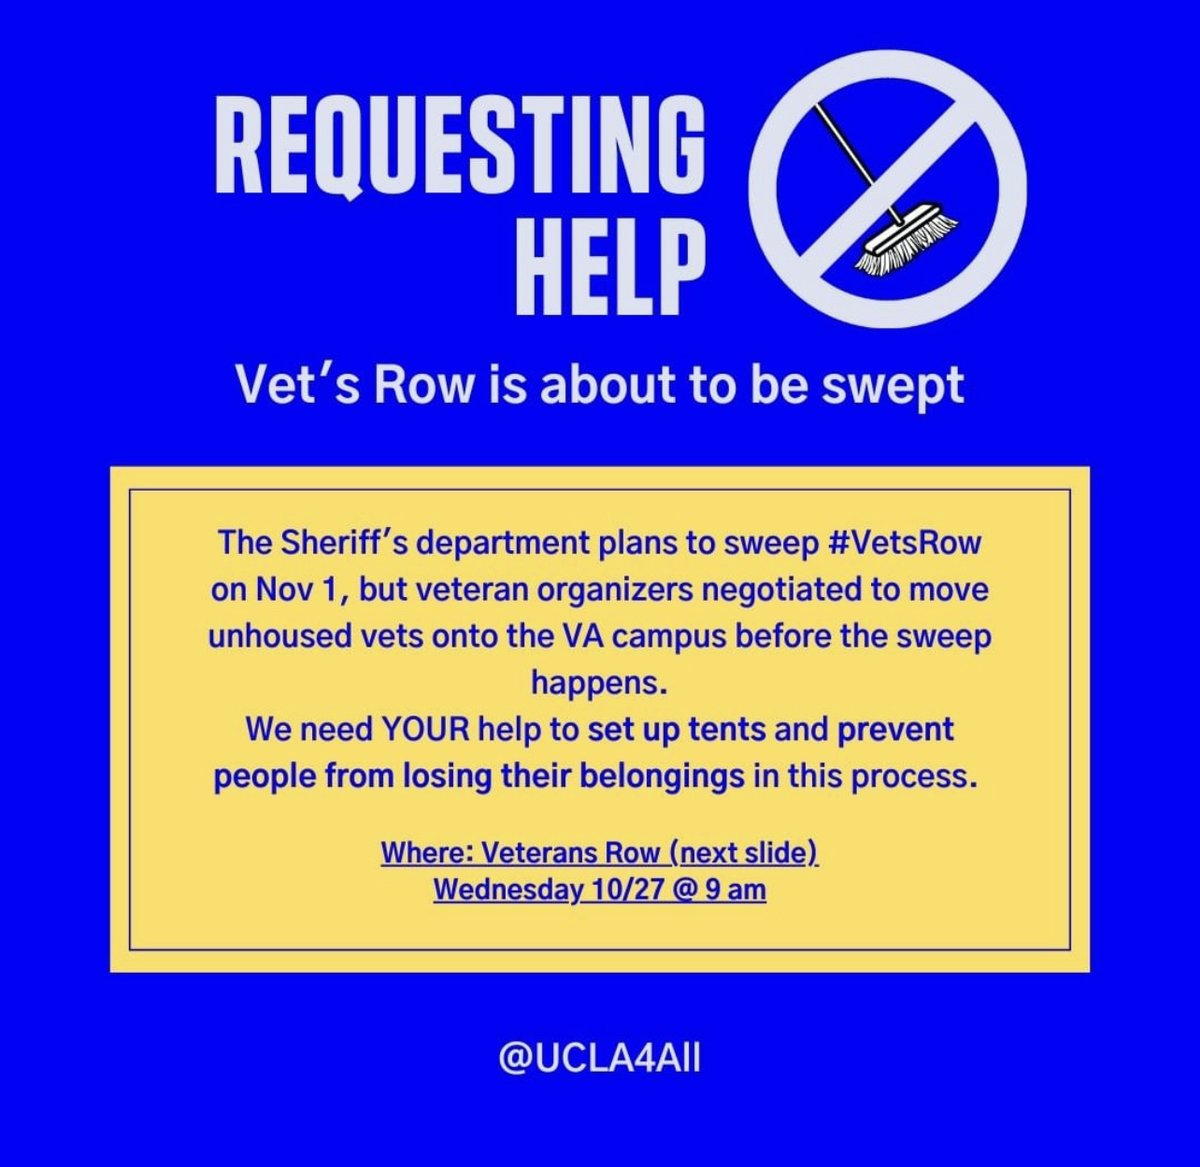 Flyer: REQUESTING HELP (image of broom being struck through to signify no sweeps)  Vet's Row is about to be swept.   On November 1, the Sheriff's department plans to sweep Veterans Row, subjecting unhoused veterans to lose their belongings (including important legal documents), have their homes removed, and become displaced from their community.  Where: Veterans Row on Wednesday 10/27 at 9 am.